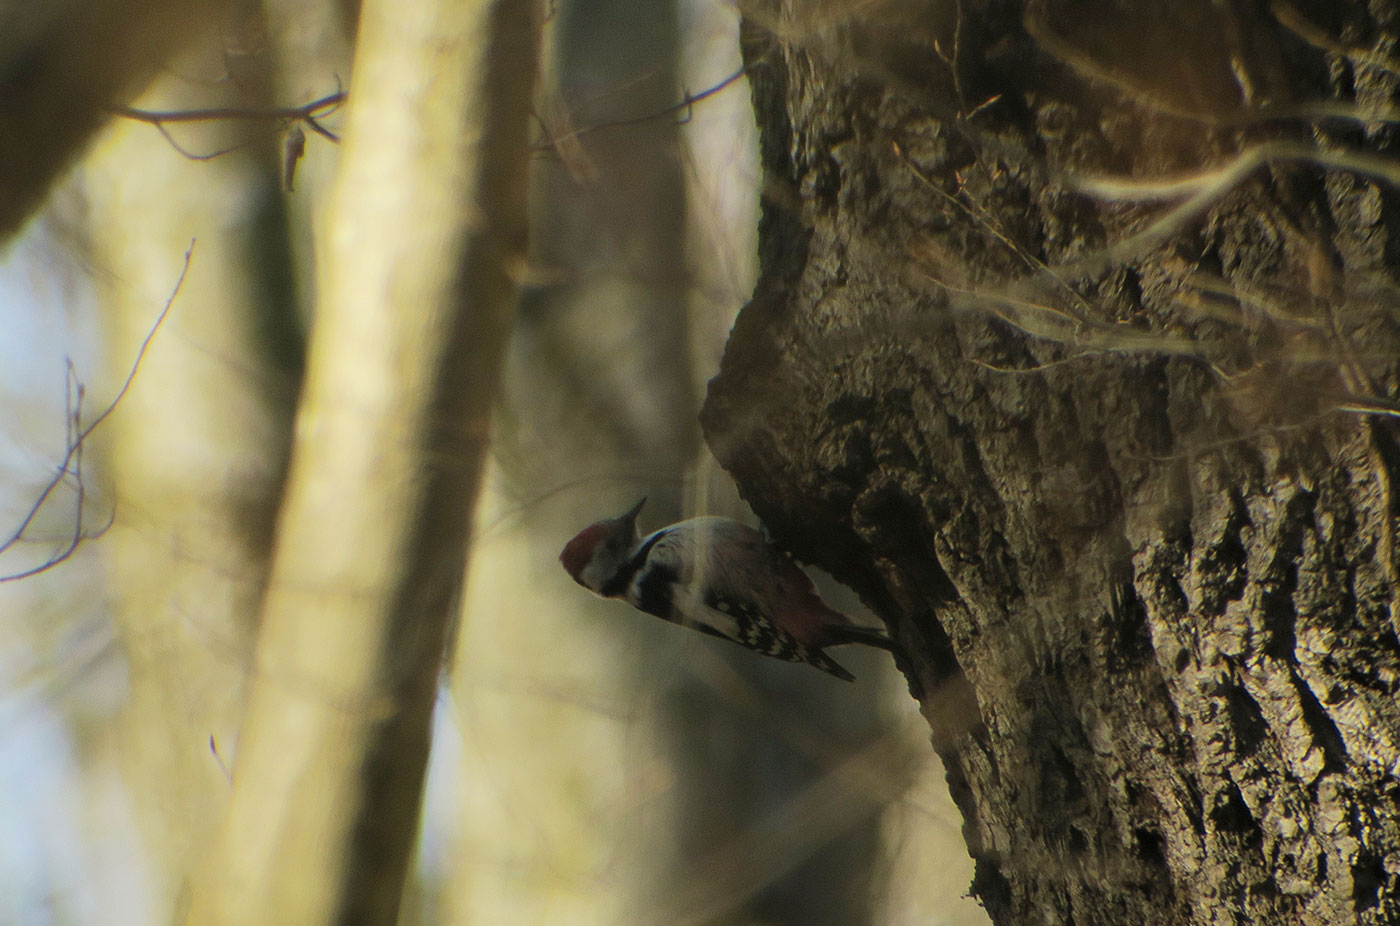 04_mittelspecht_middle-spotted-woodpecker_ammersee_2019-02-23_7116